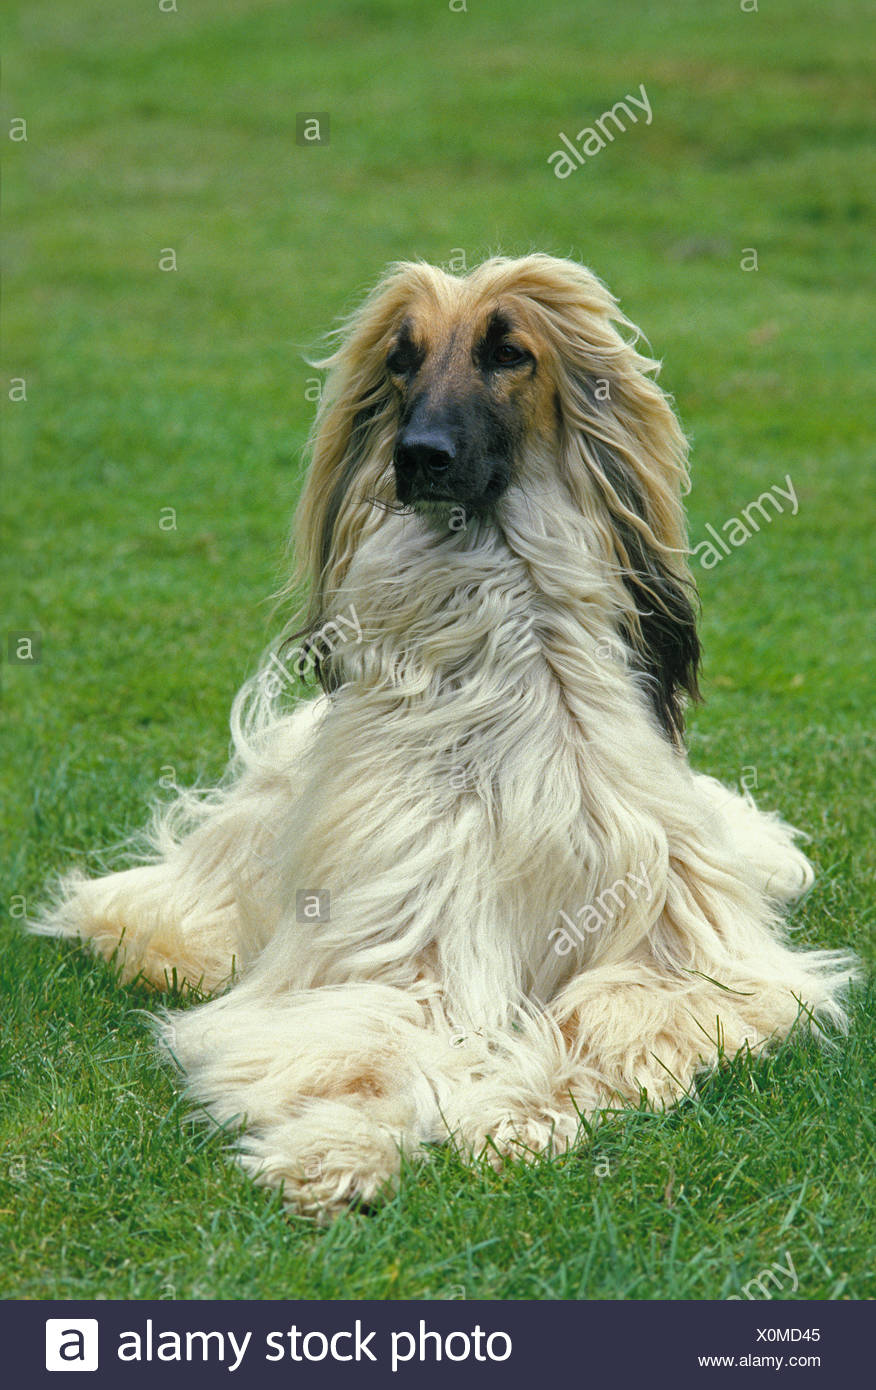 Afghan Hound, Adult Dog laying on Lawn Stock Photo